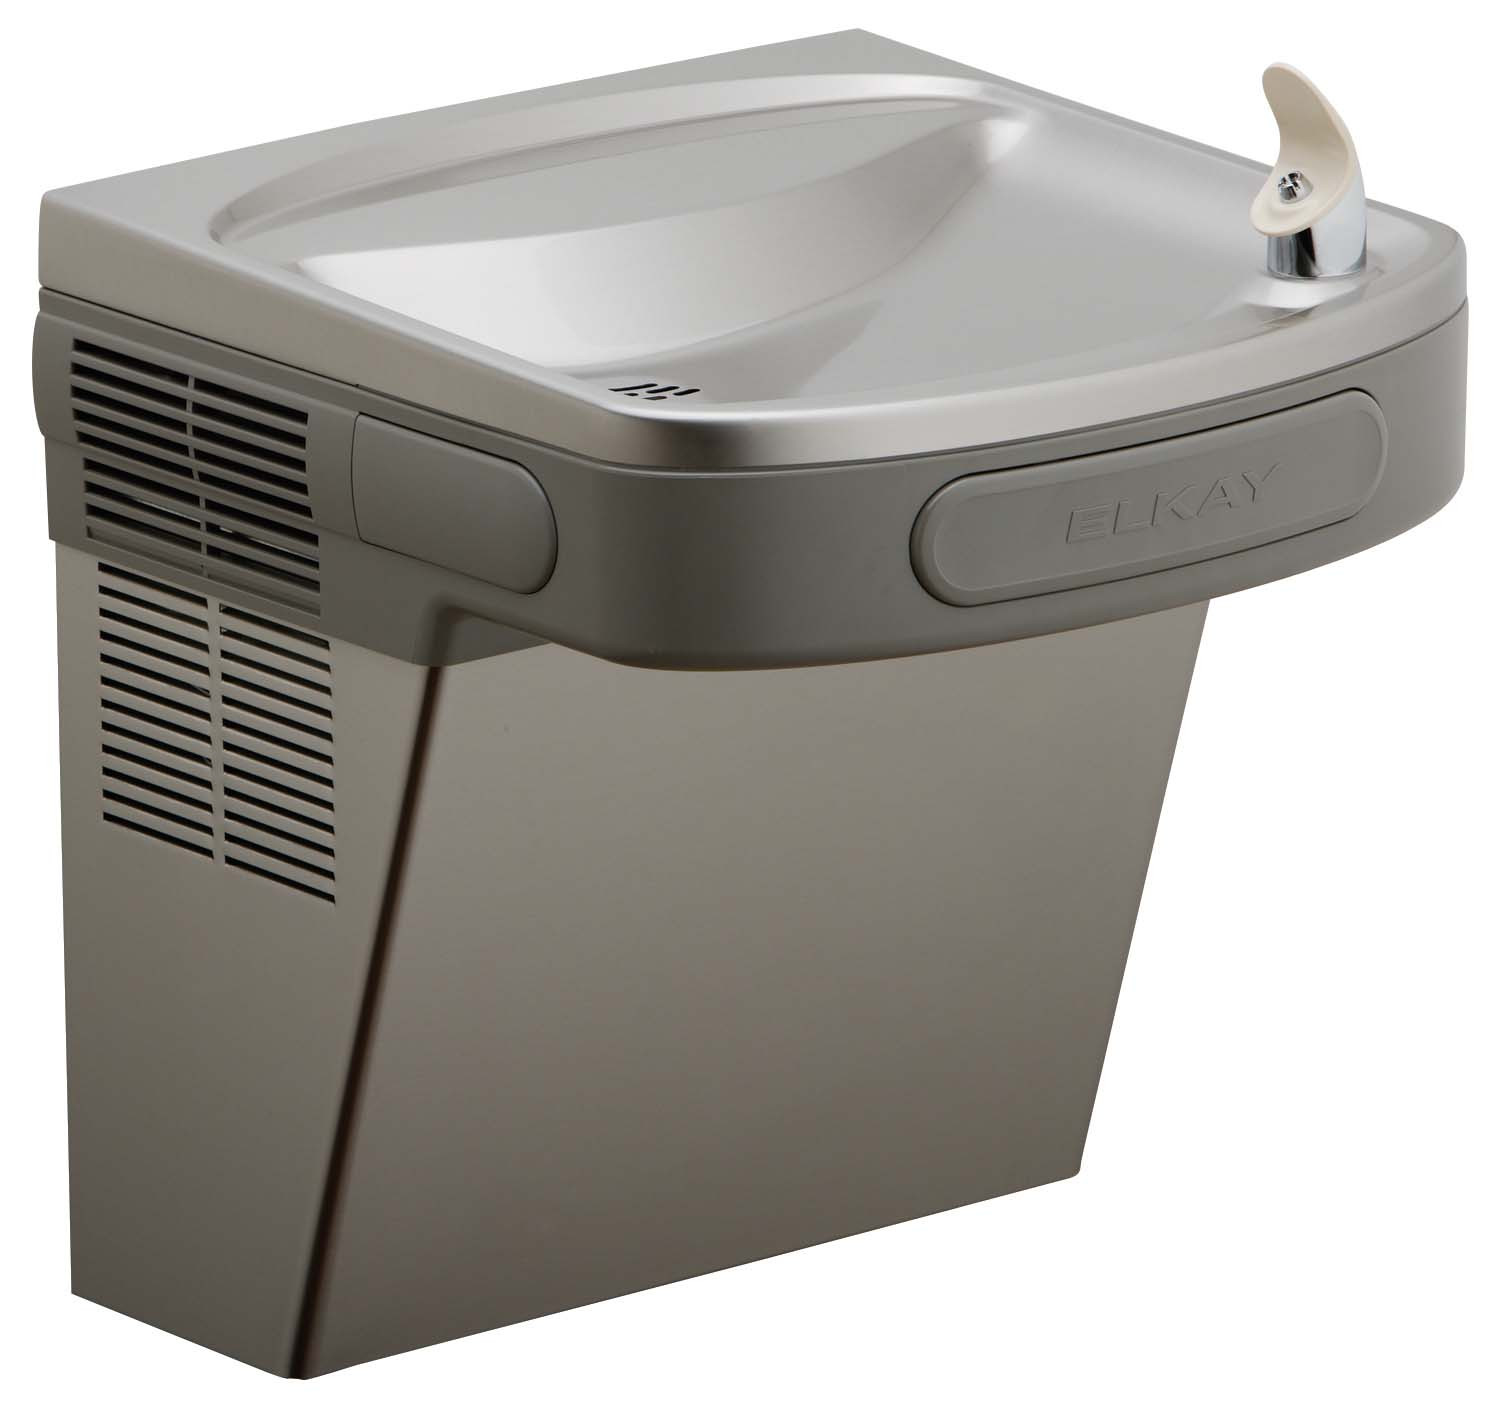 Elkay ezs8l drinking fountain for Decor 5 5 litre drink fountain